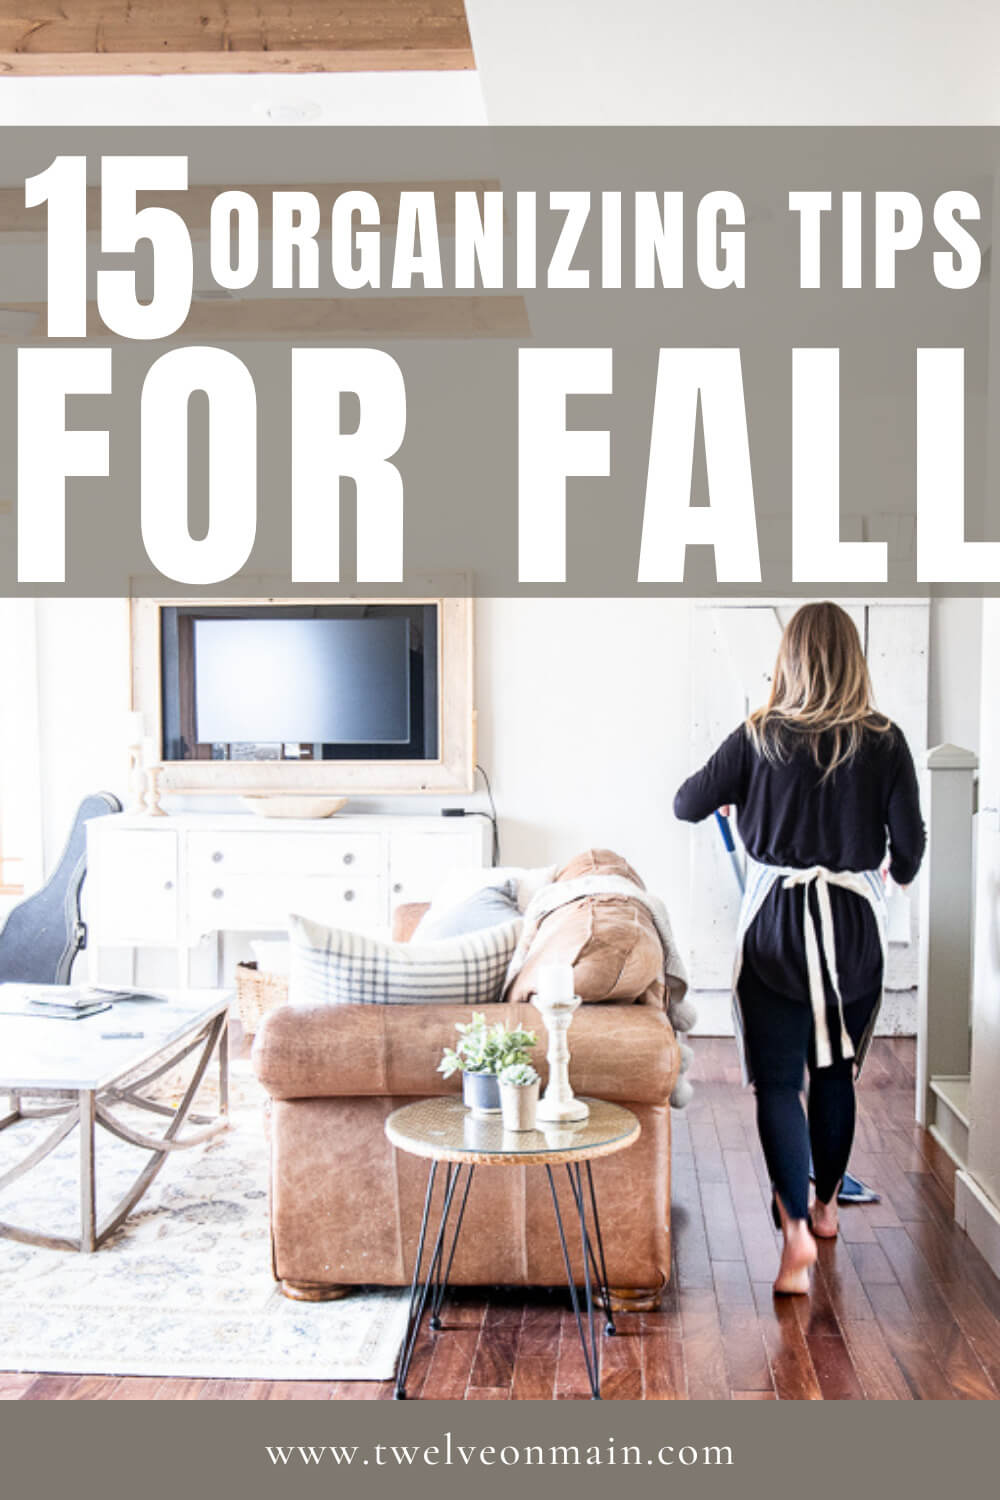 15 organizing tips to help you prepare for fall and the oncoming holidays!  These actionable tips can help alleviate unwanted stress.